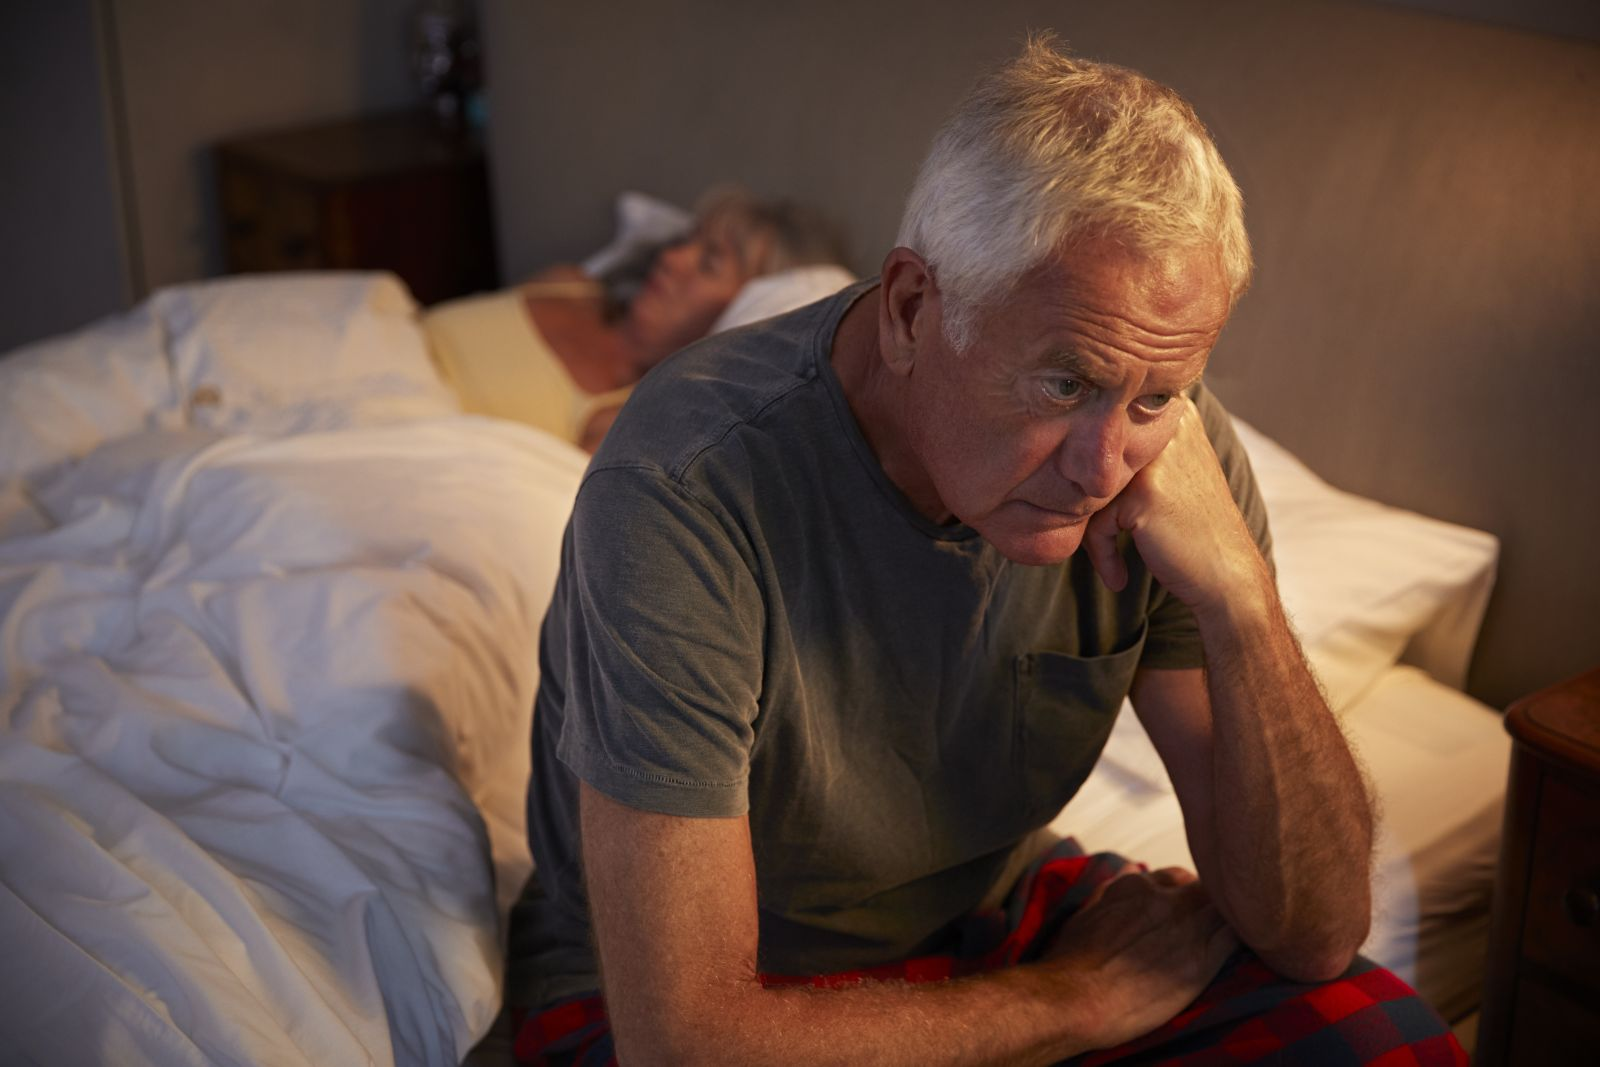 Can't sleep? You may be at risk for atrial fibrillation